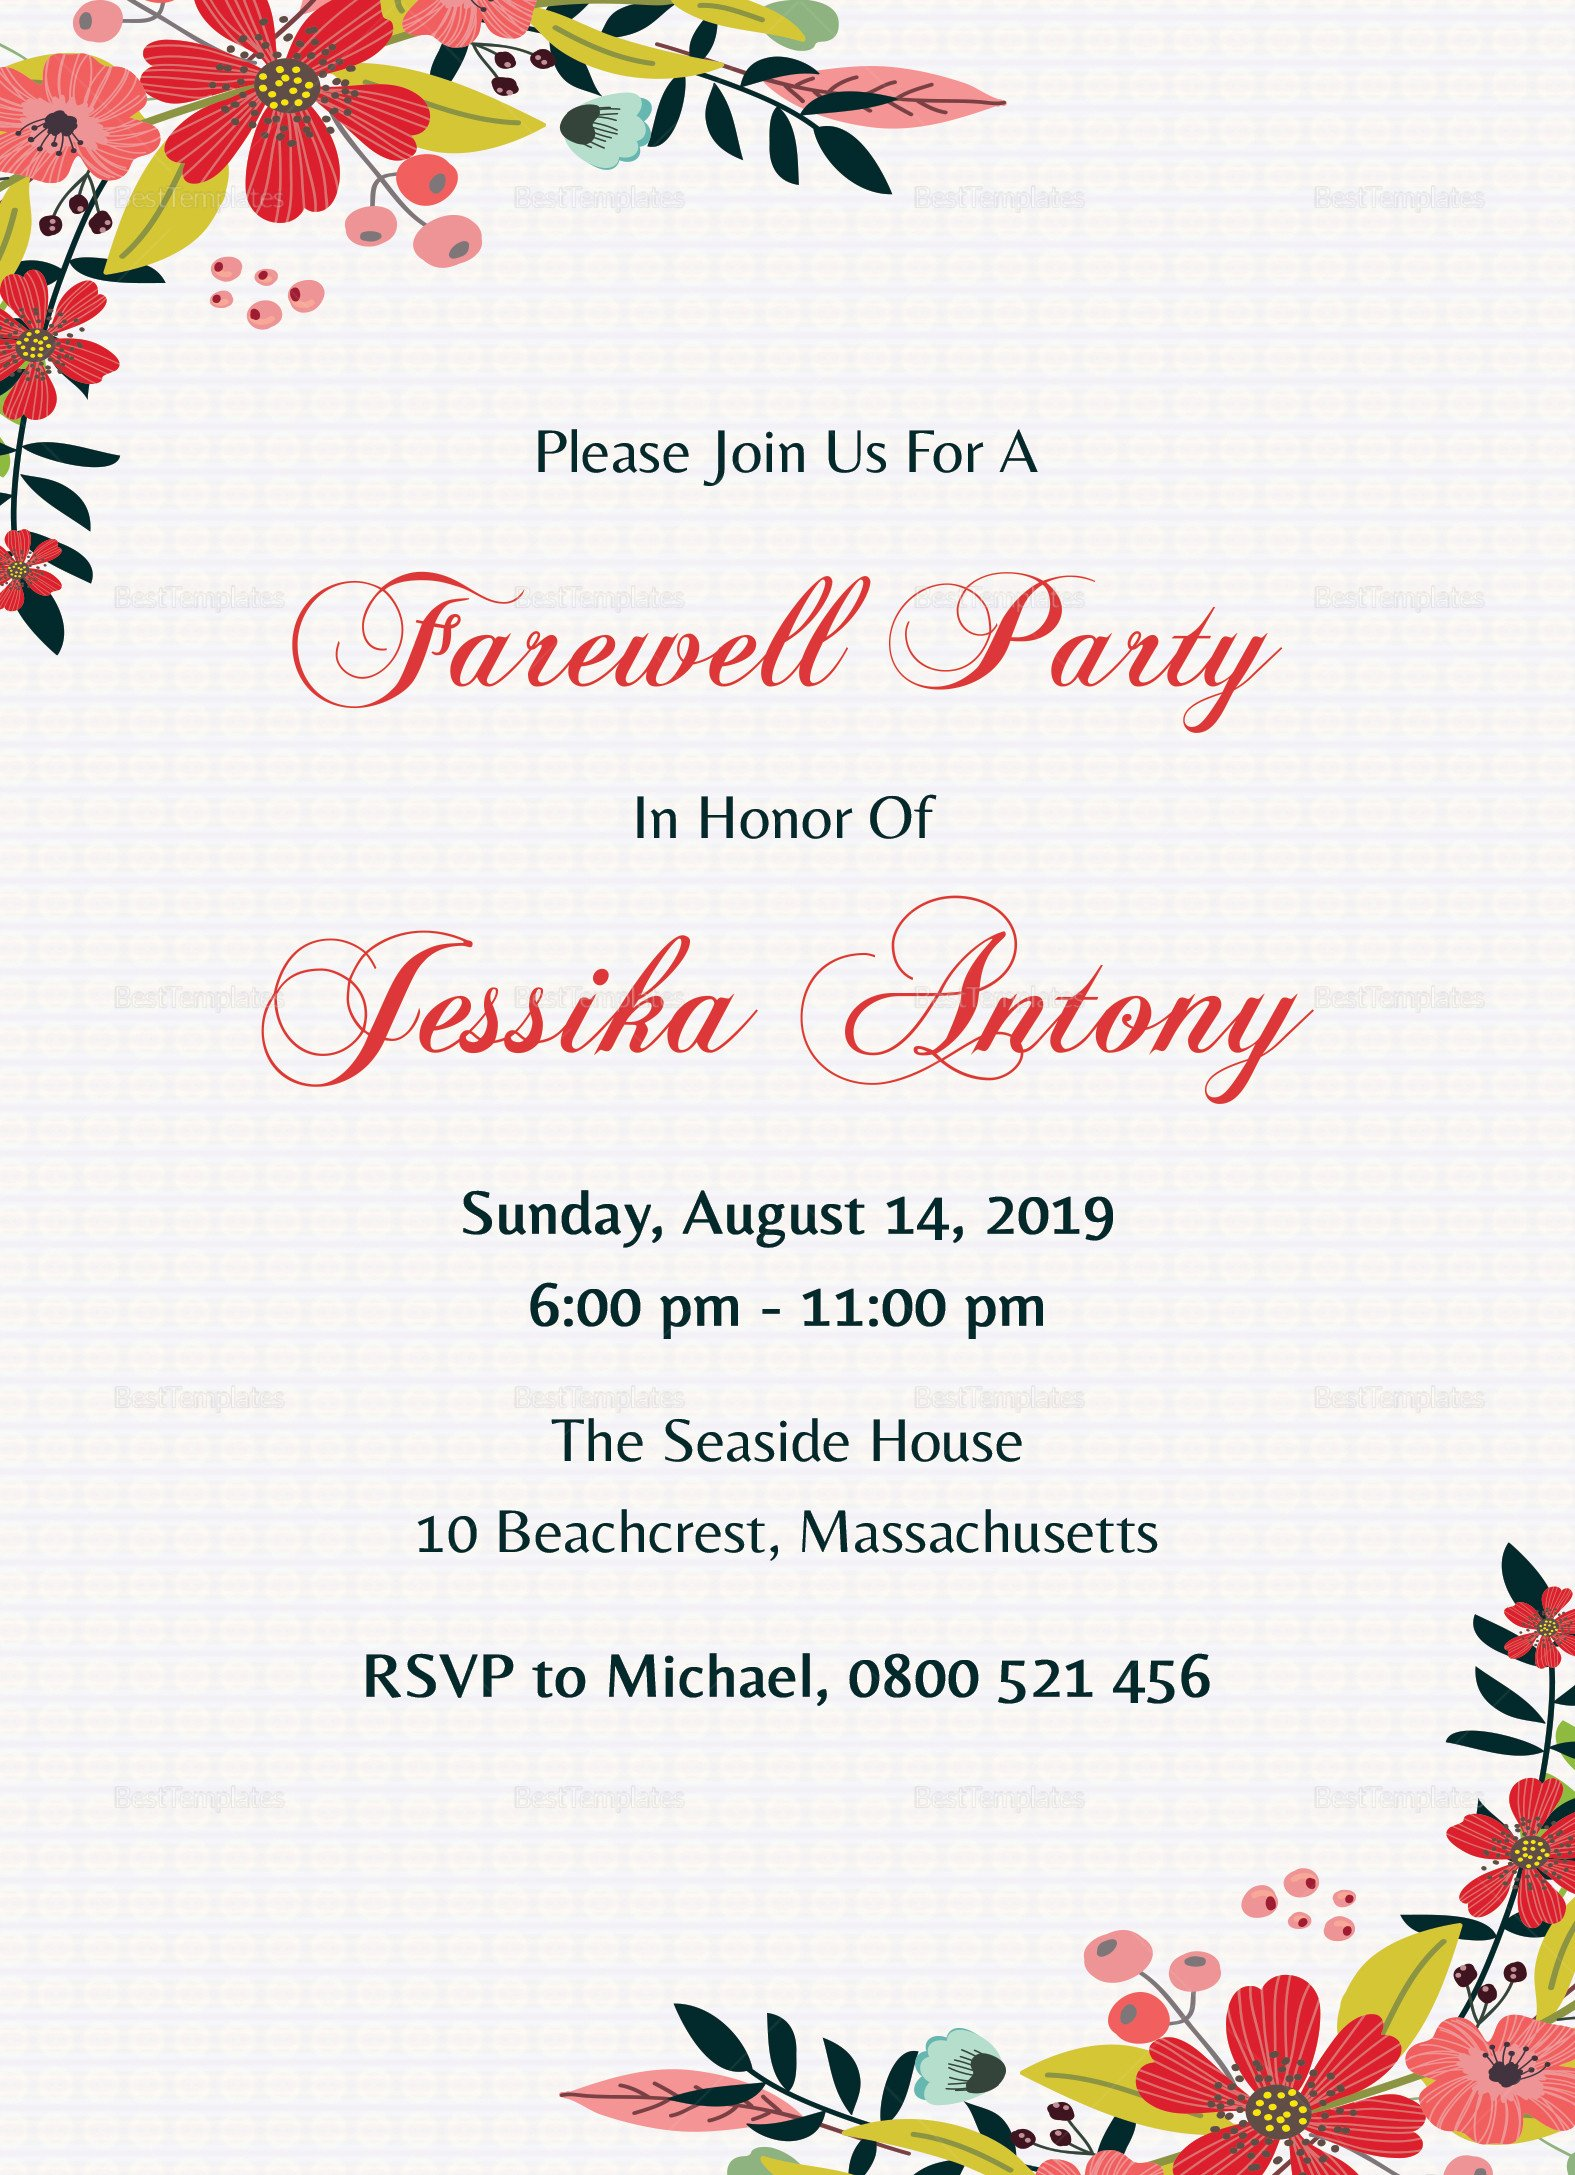 Farewell Party Invitation Template Free Classic Farewell Party Invitation Design Template In Word